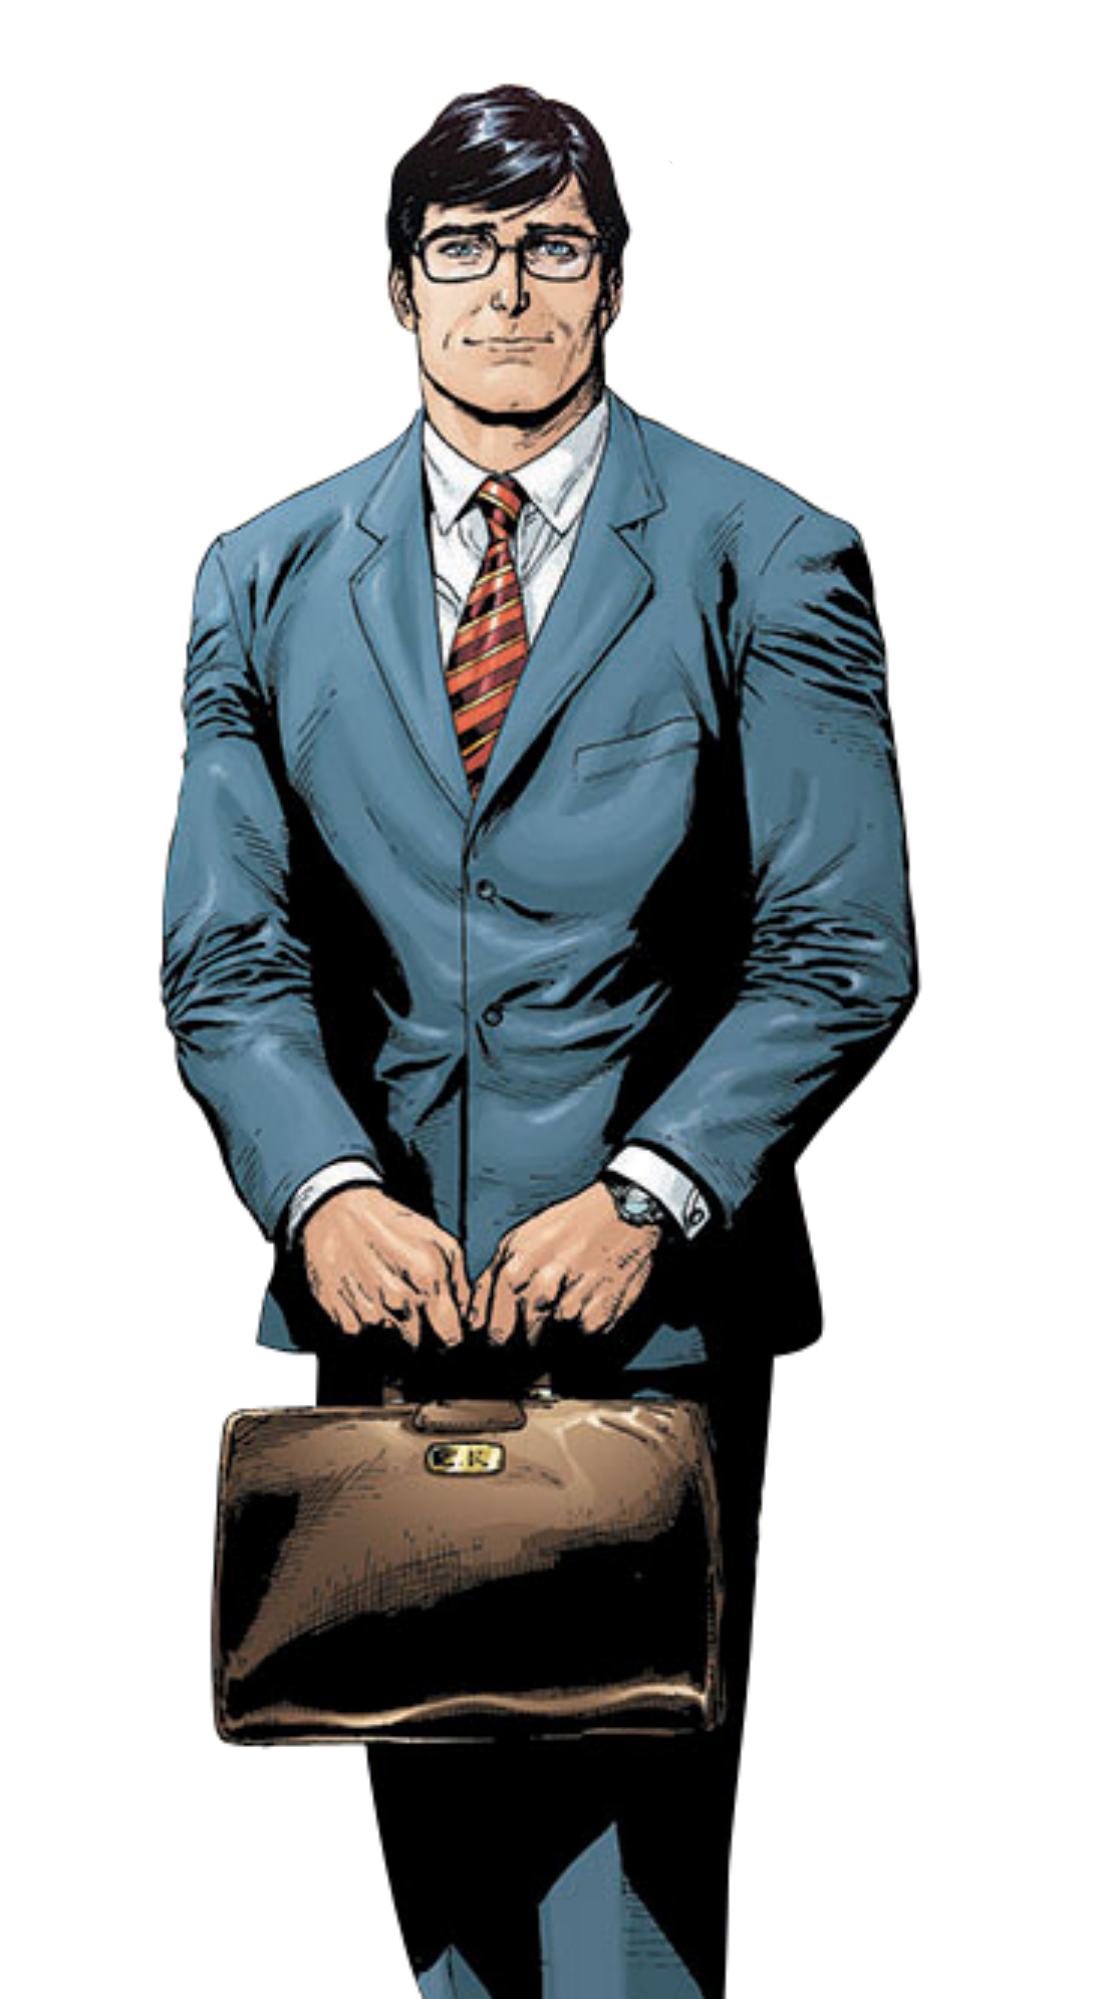 an examination of the identity of clark kent When he did the same thing dressed as clark kent,  living under his secret identity as clark kent,  close examination of this card reveals that,.